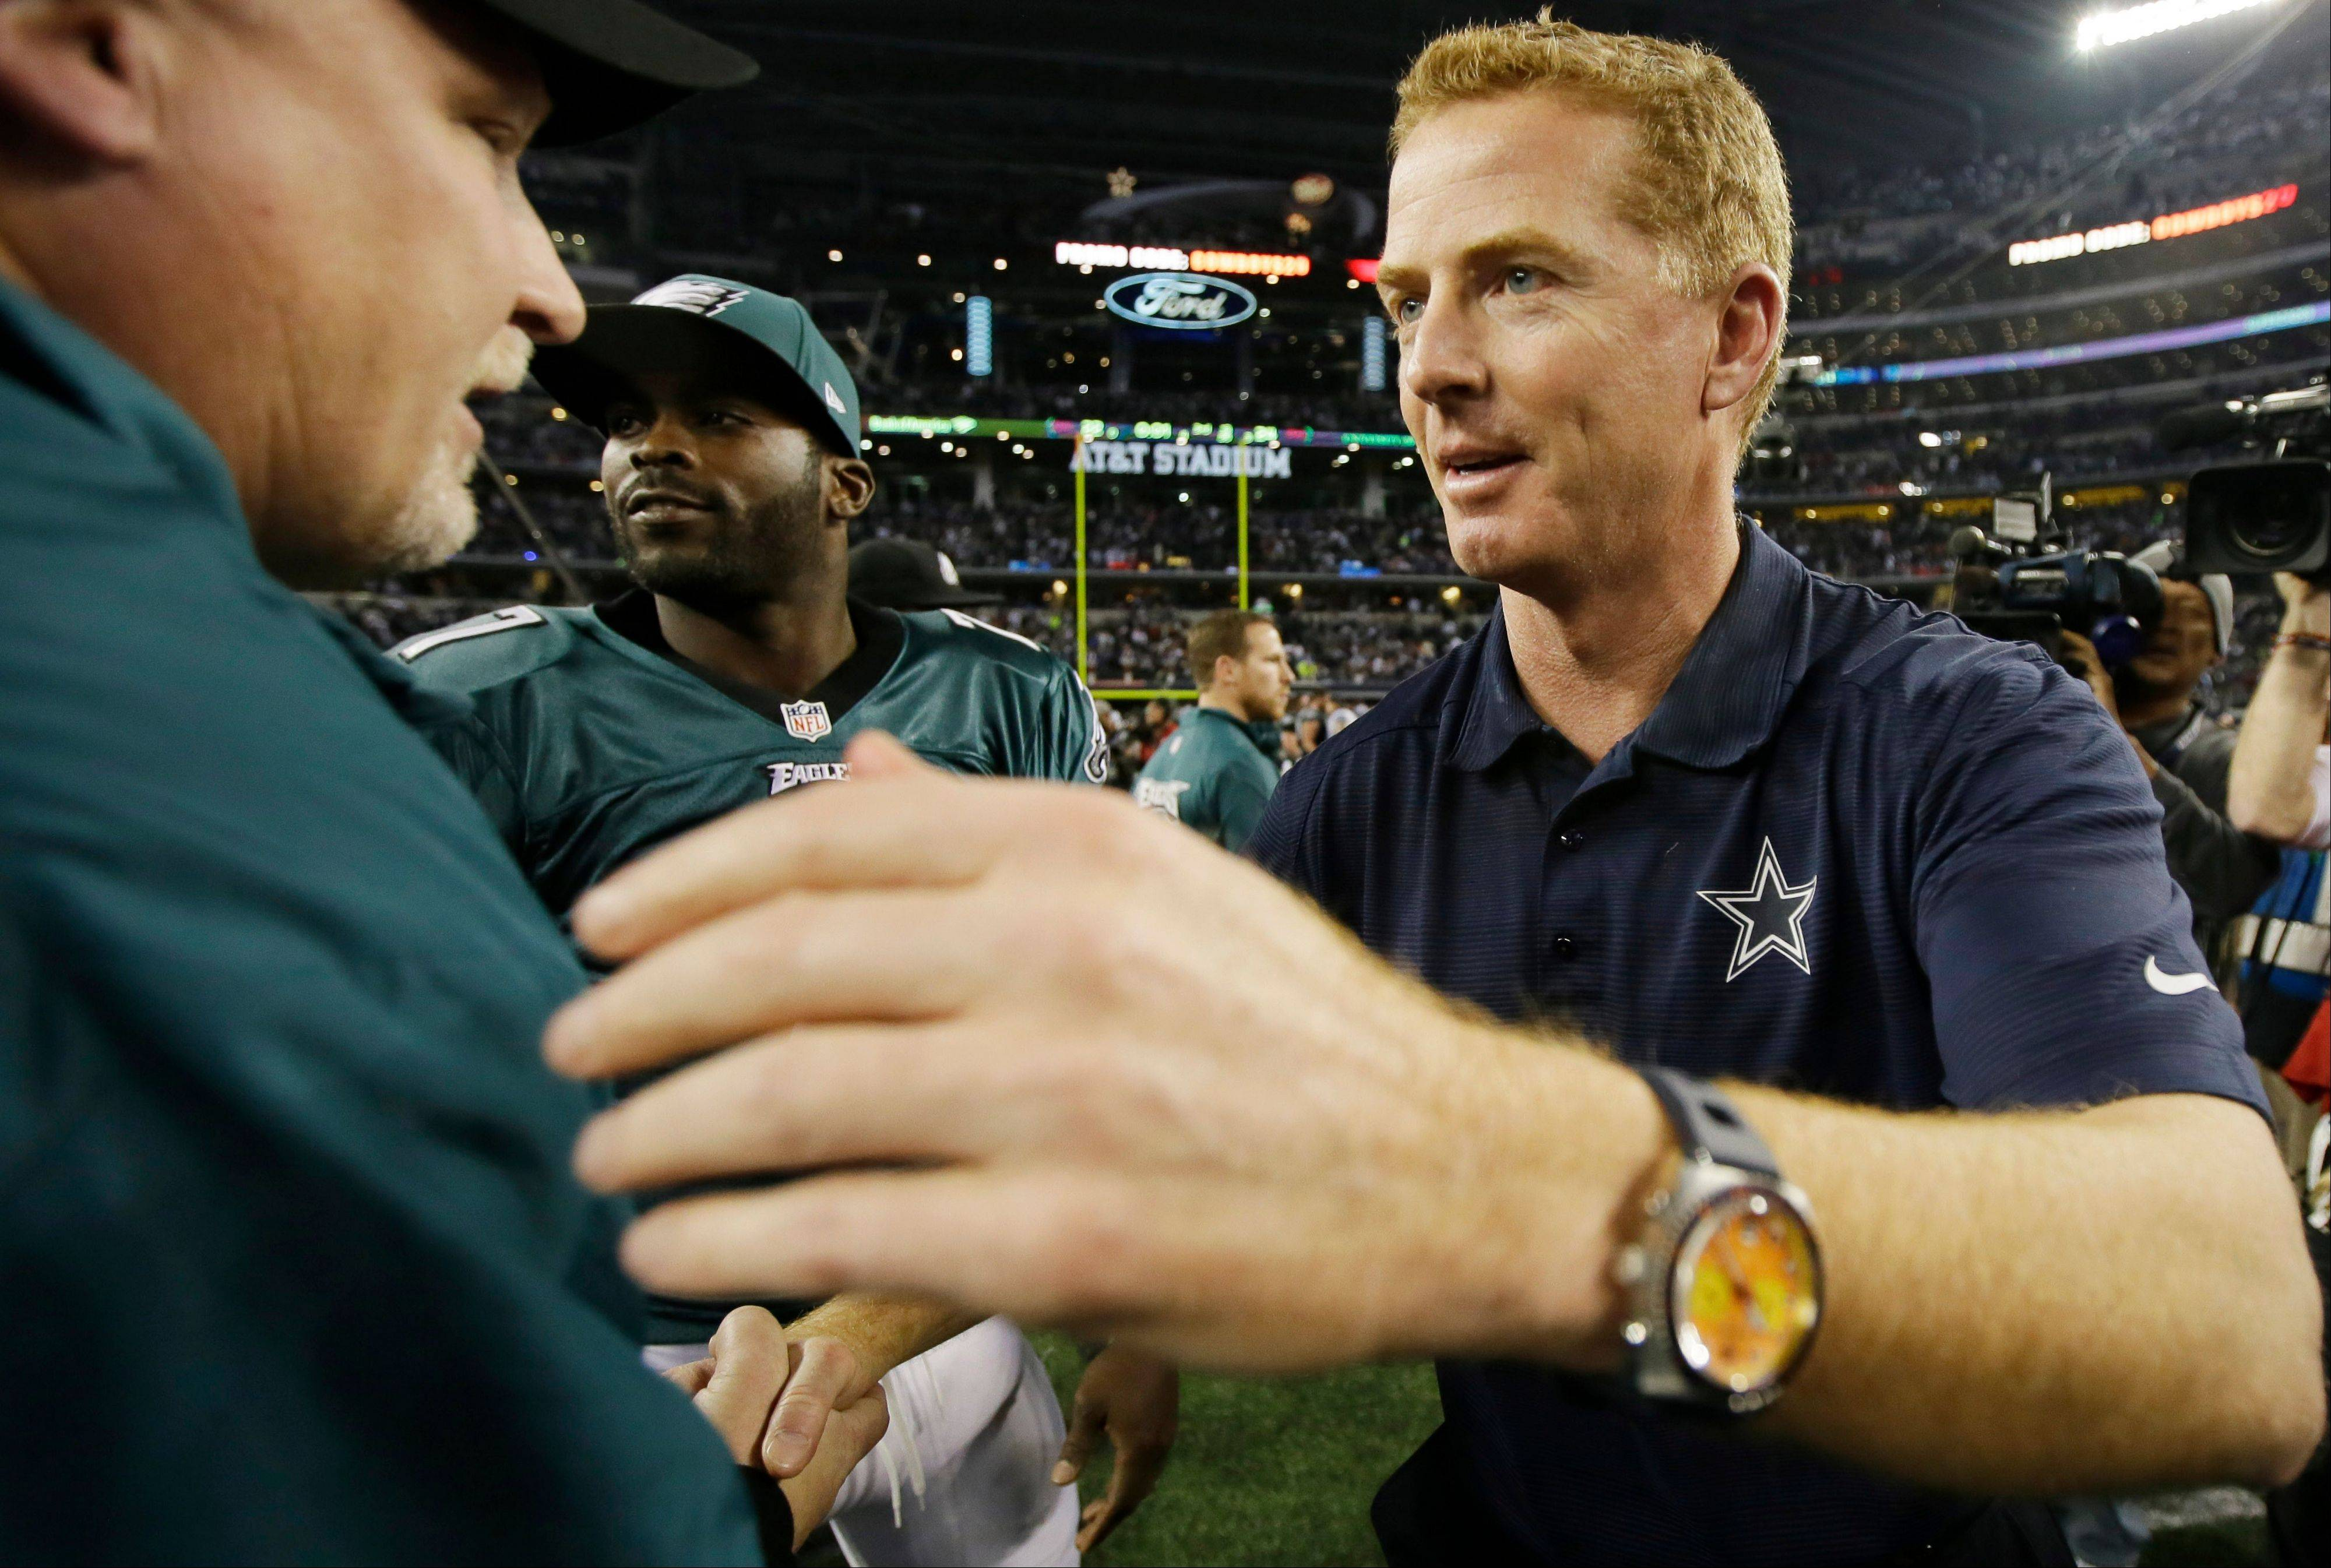 Dallas Cowboys head coach Jason Garrett greets members of the Philadelphia Eagles after Sunday�s game in Arlington, Texas. The Eagles won 24-22.